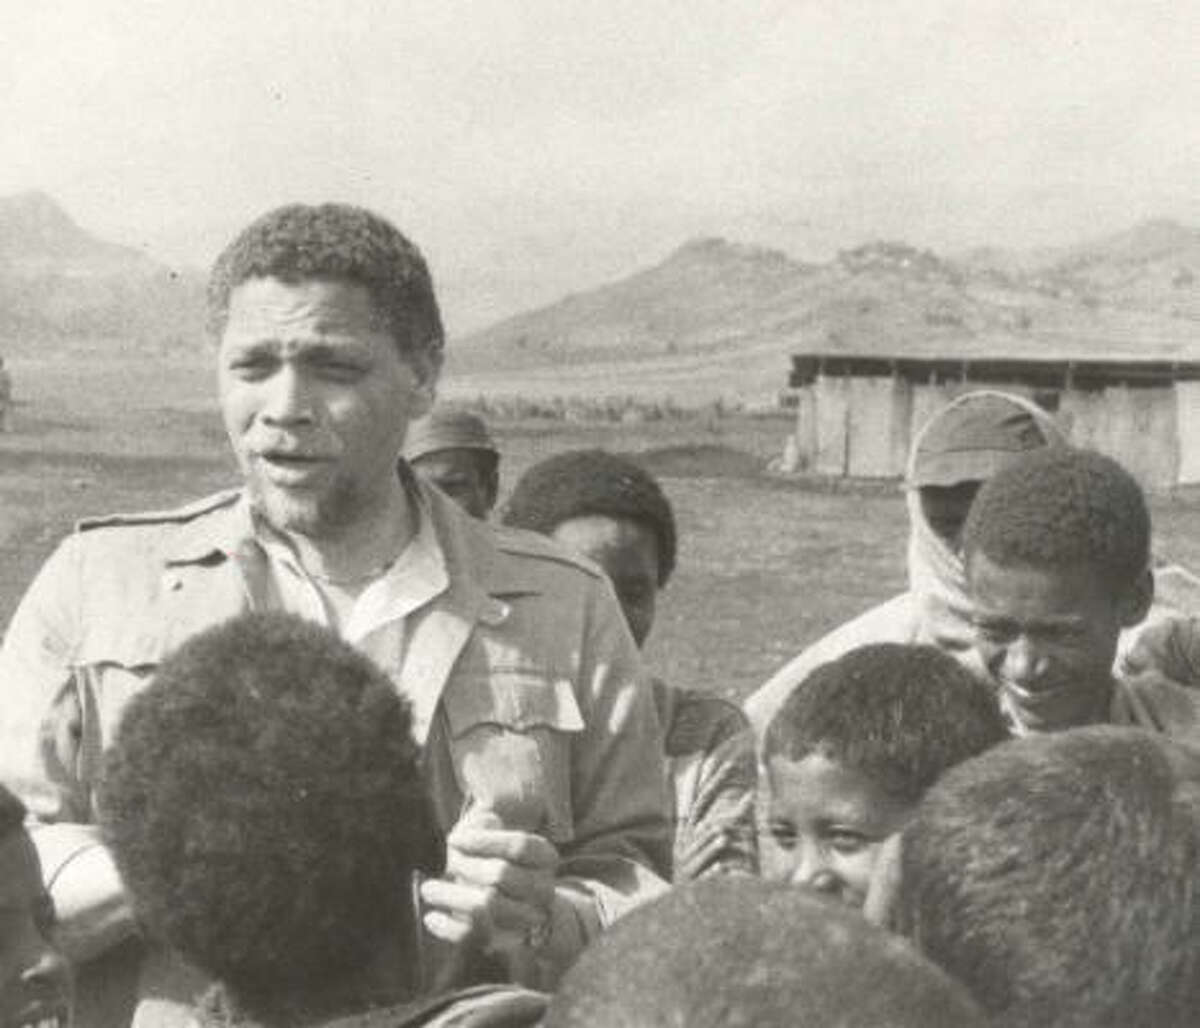 Congressman Mickey Leland visited Korem, Ethiopia, in 1984. Today is the 20th anniversary of the day Leland was reported missing during an Ethiopian relief mission in 1989.